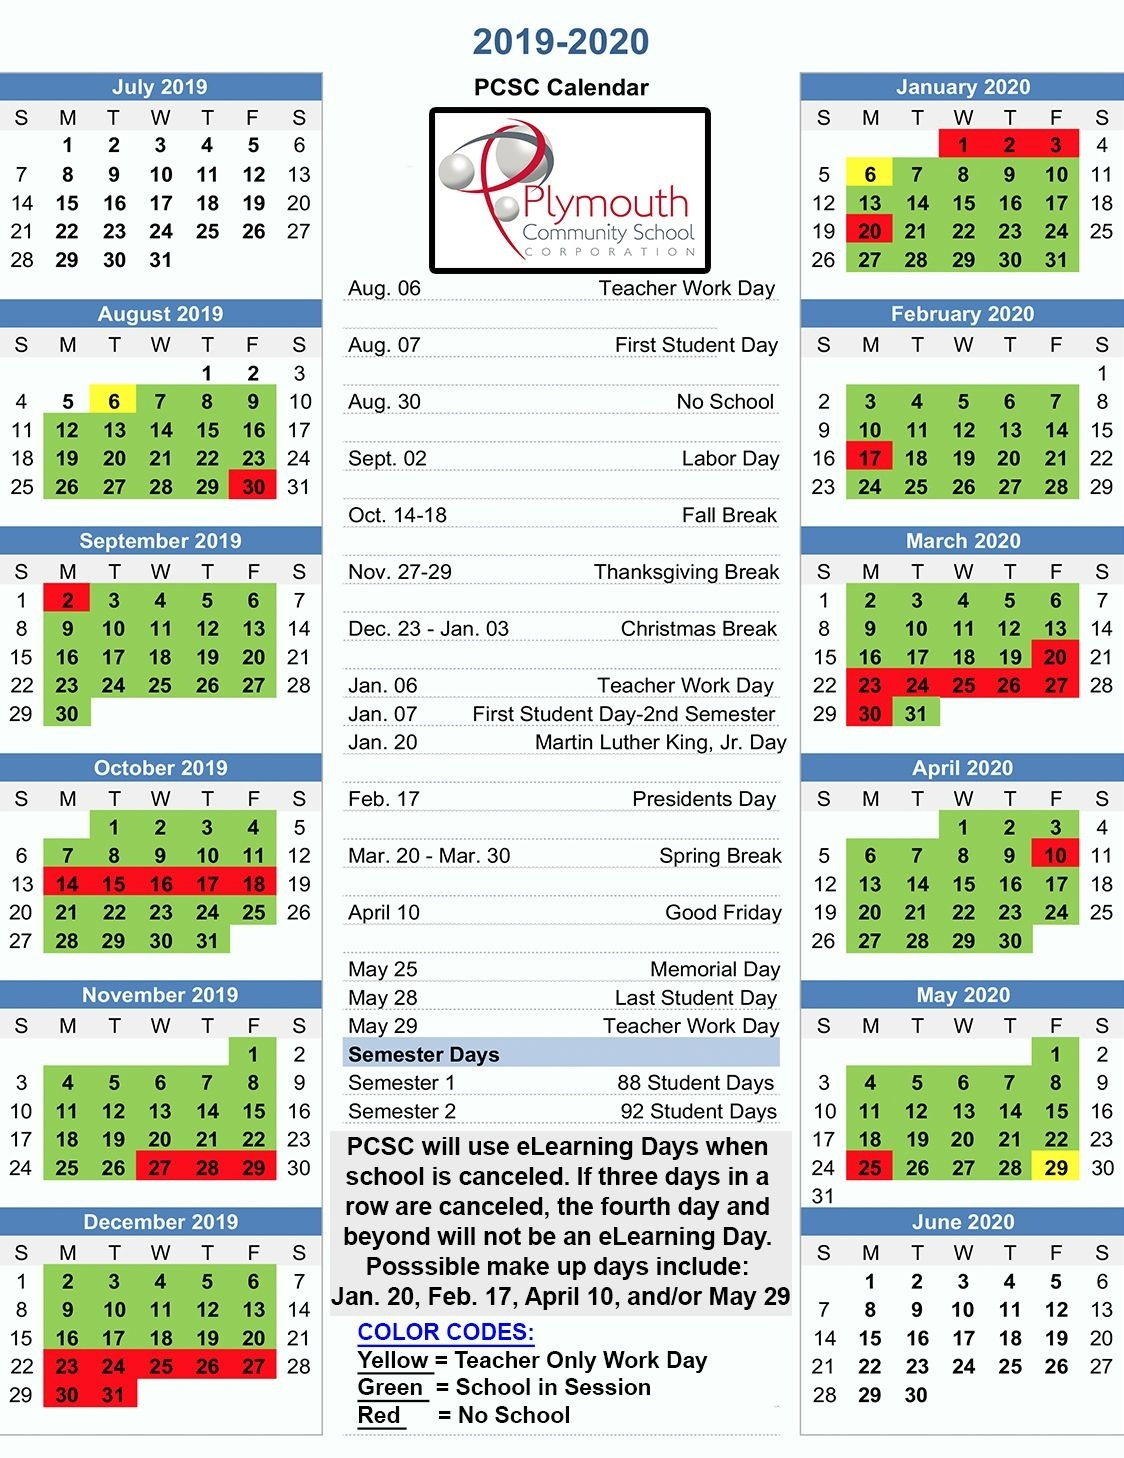 Download A Copy Of The Recently Approved 2019-2020 Pcsc Balanced_School Calendar Charlotte County